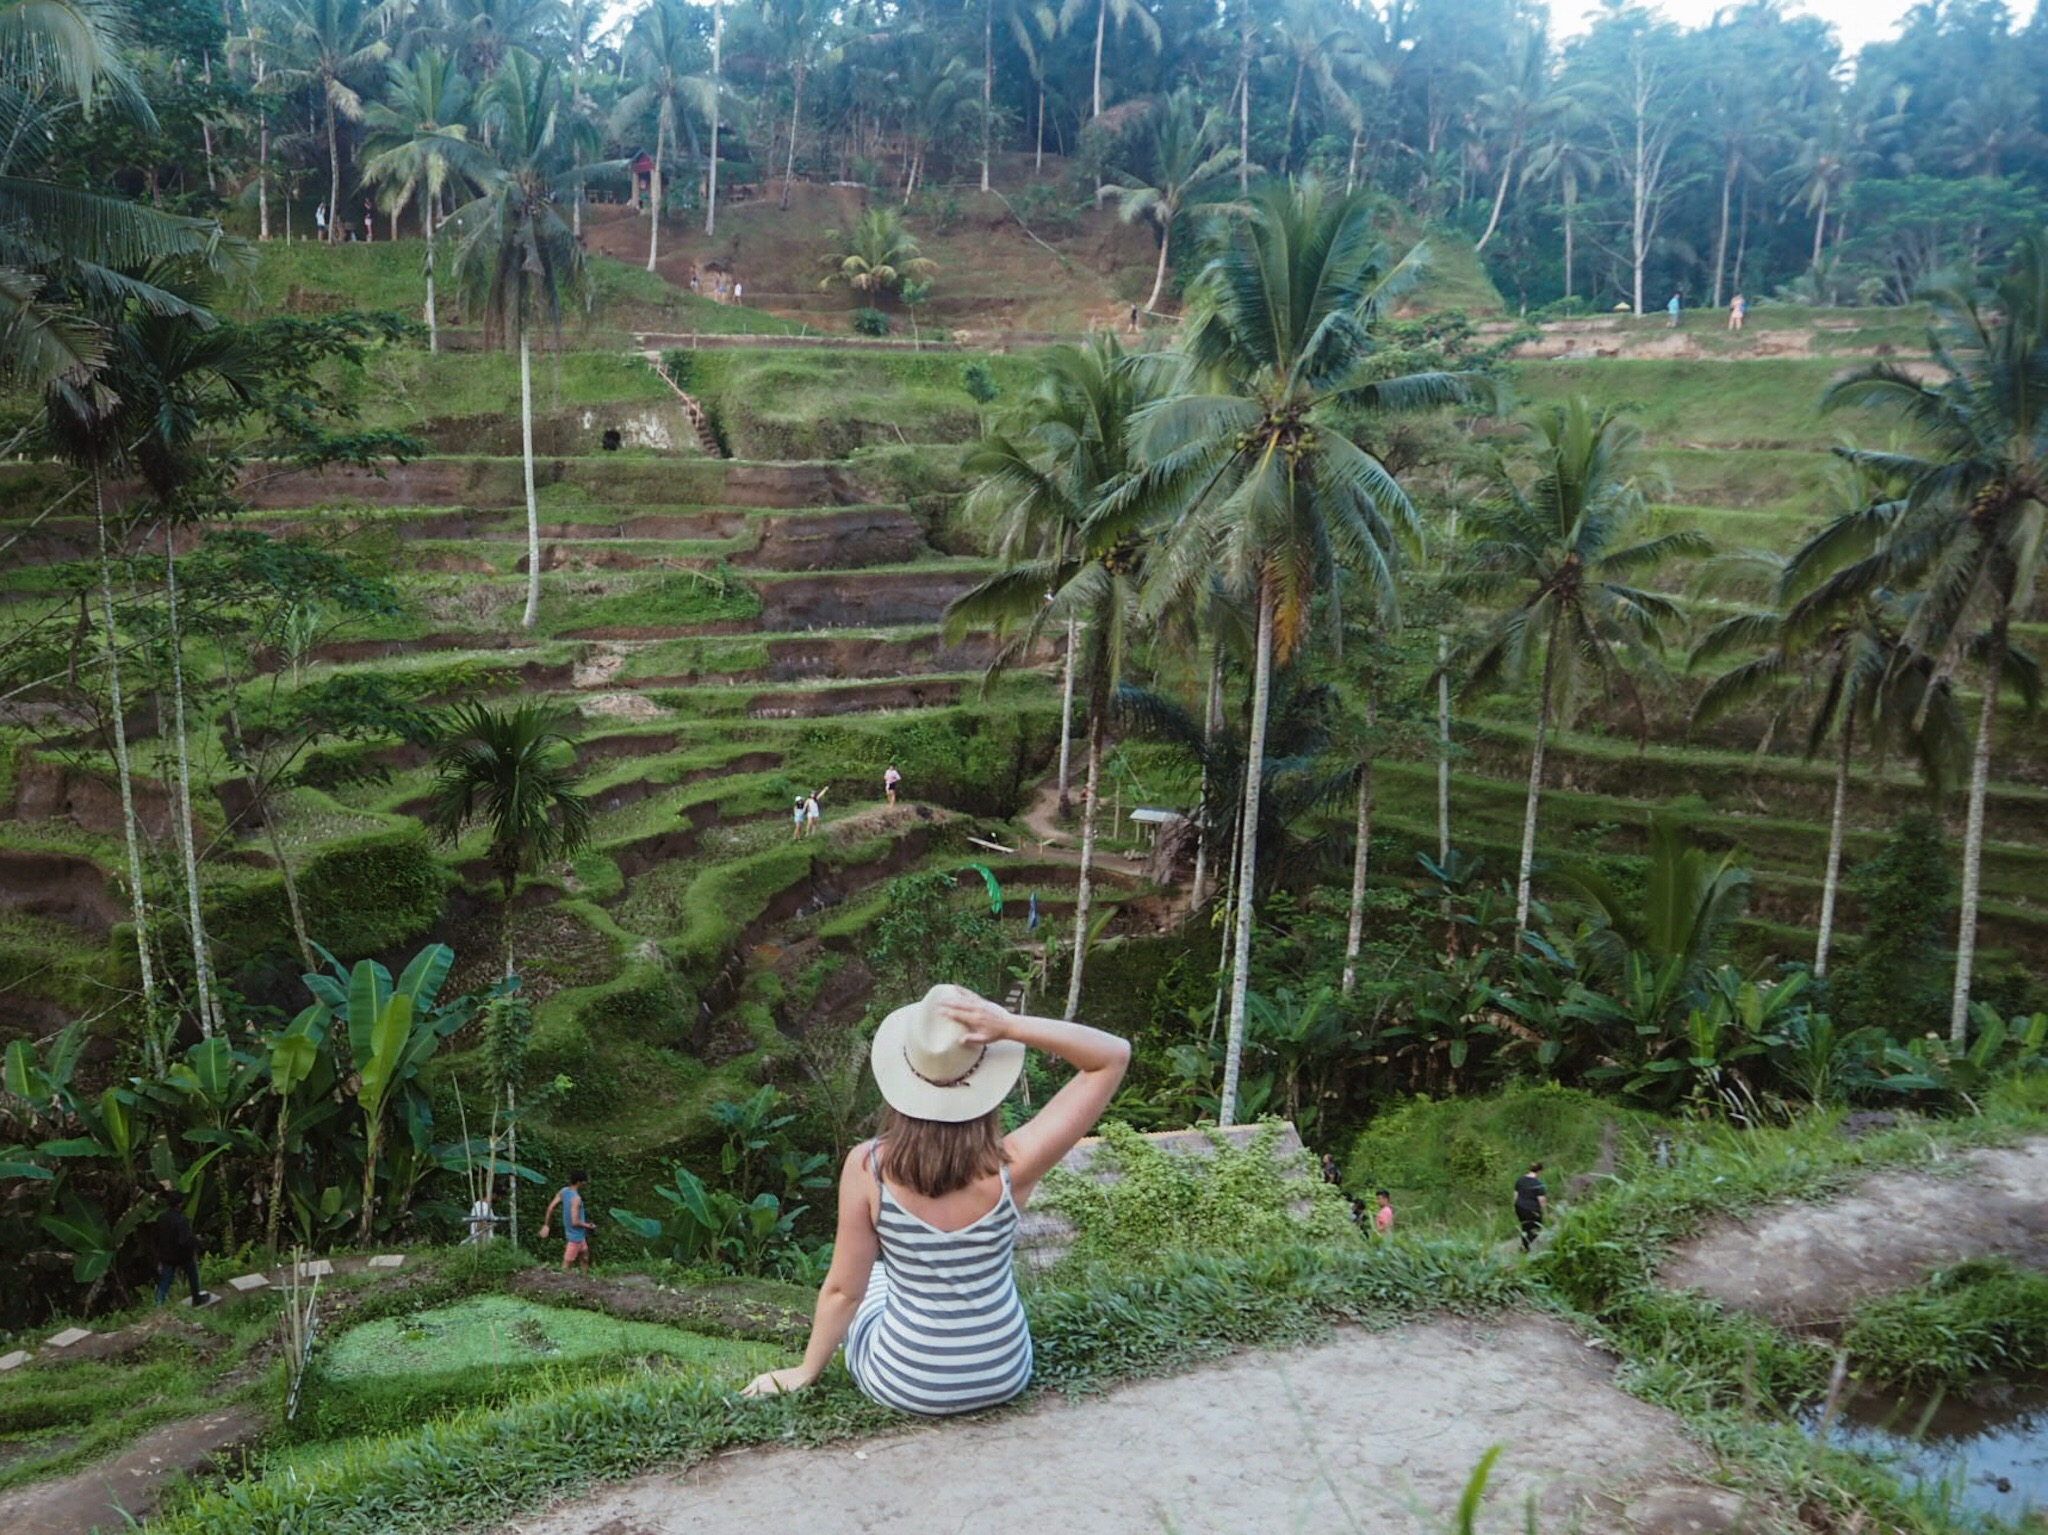 bali travel itinerary ideas - Ubud